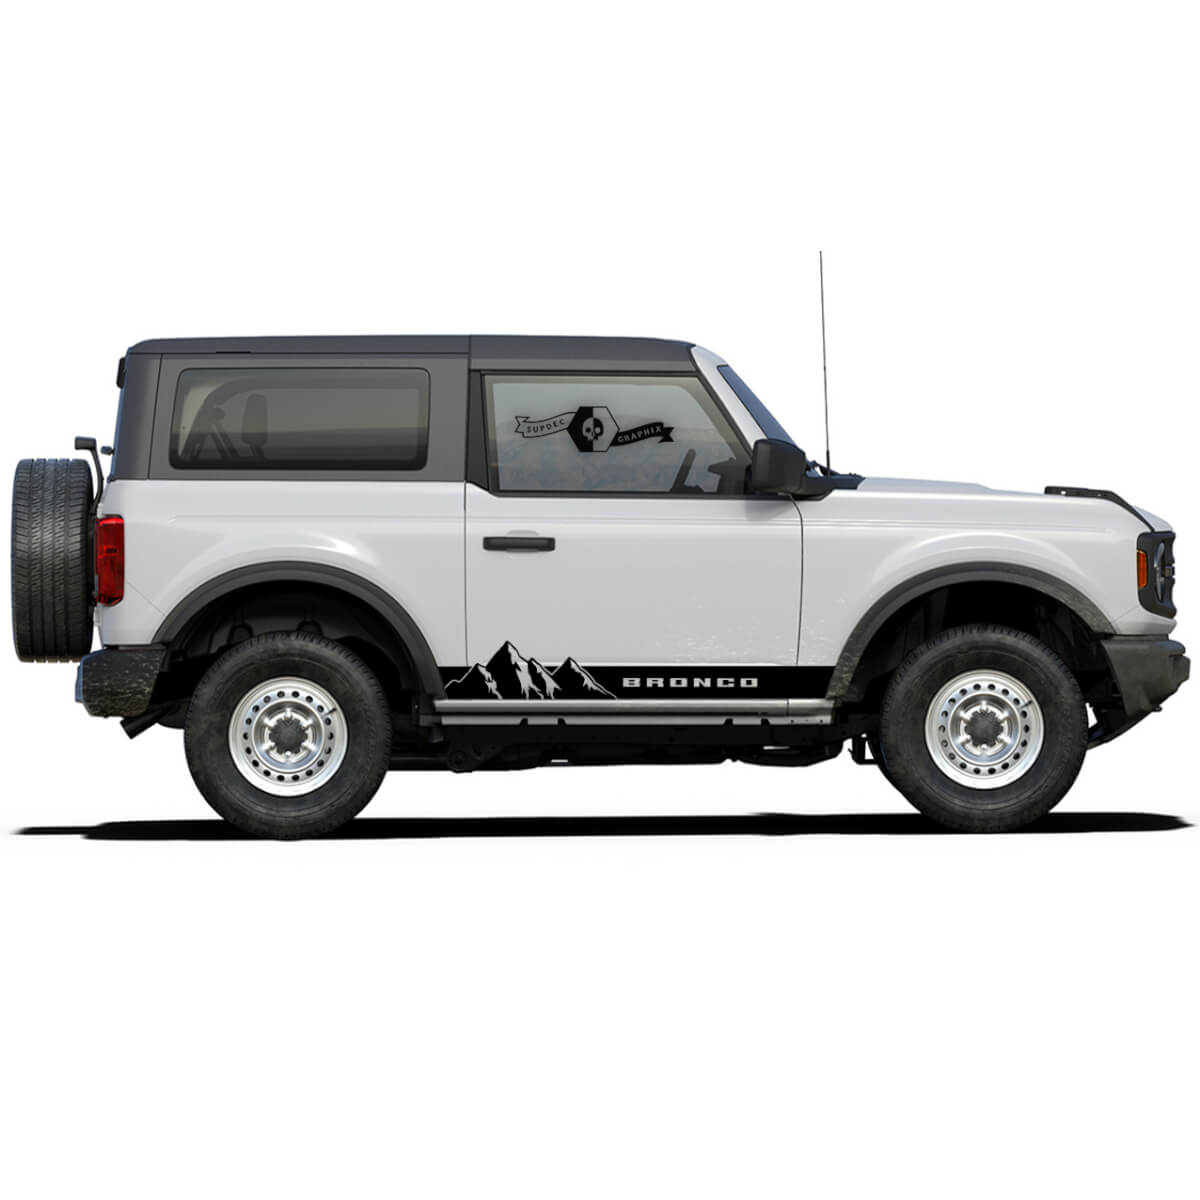 Pair of Mountains Rocker Panel Side Decals Stickers for Ford Bronco 2021